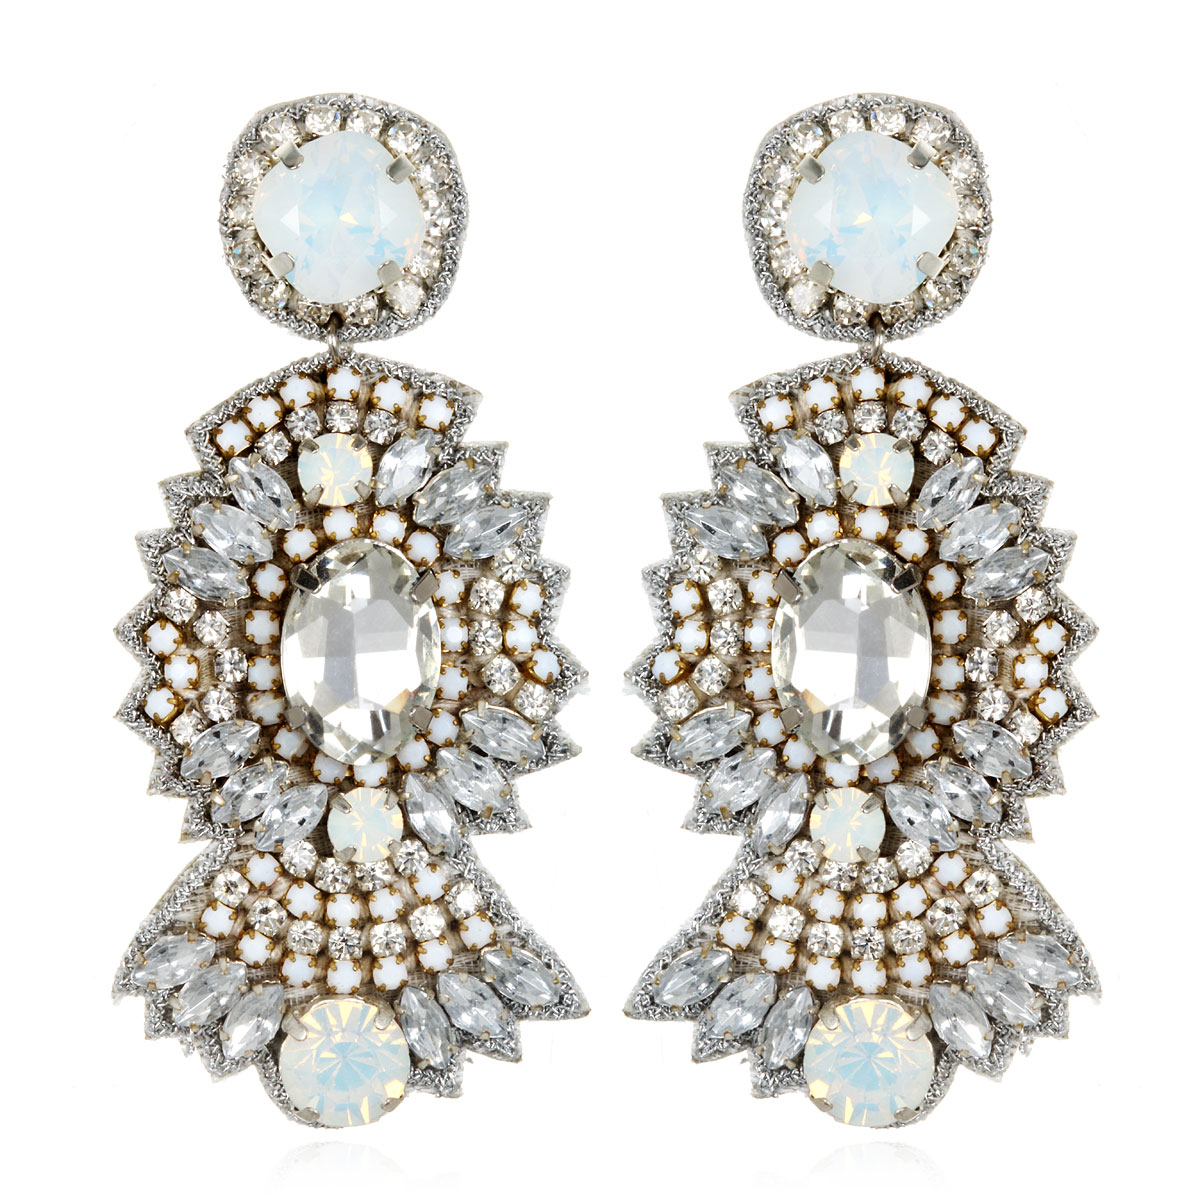 St. Germaine Opal Earrings by SUZANNA DAI